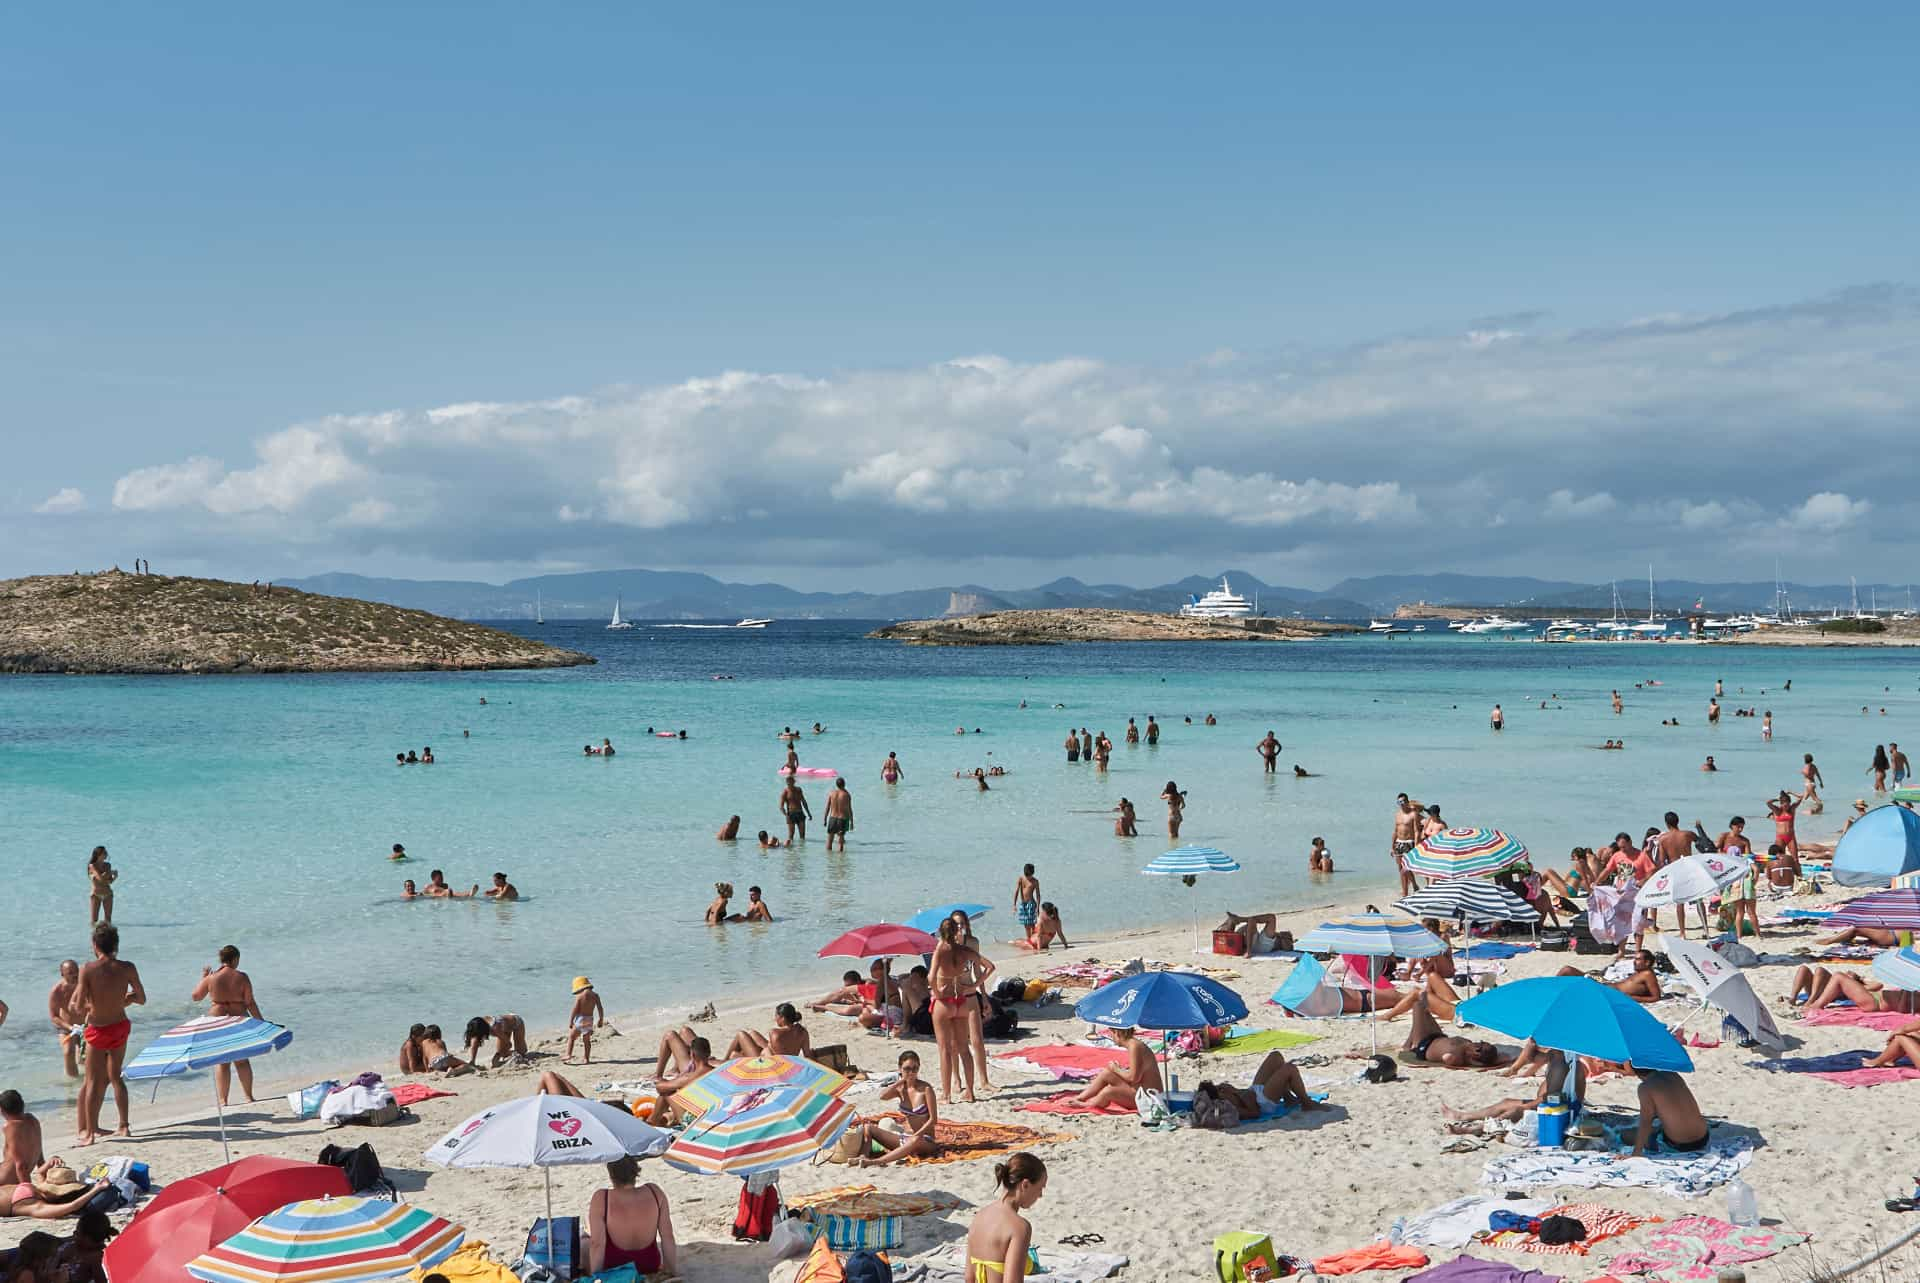 Eis as 60 praias europeias mais populares no Instagram